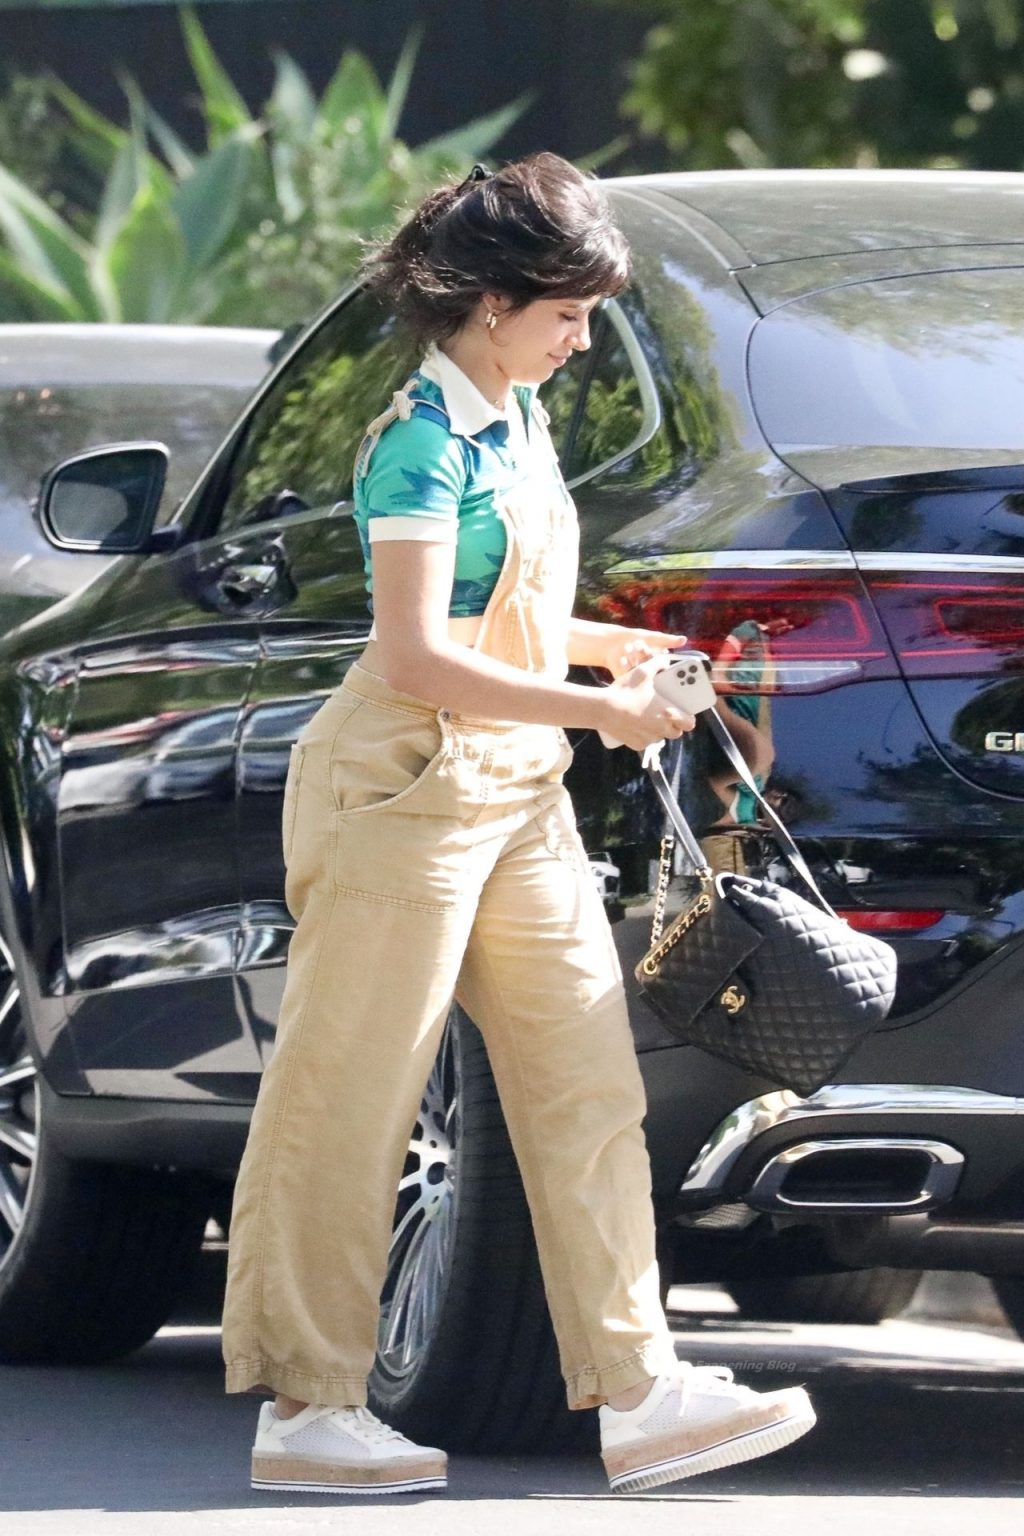 Camila Cabello is Seen While Out Running Errands in Beverly Hills (28 Photos)